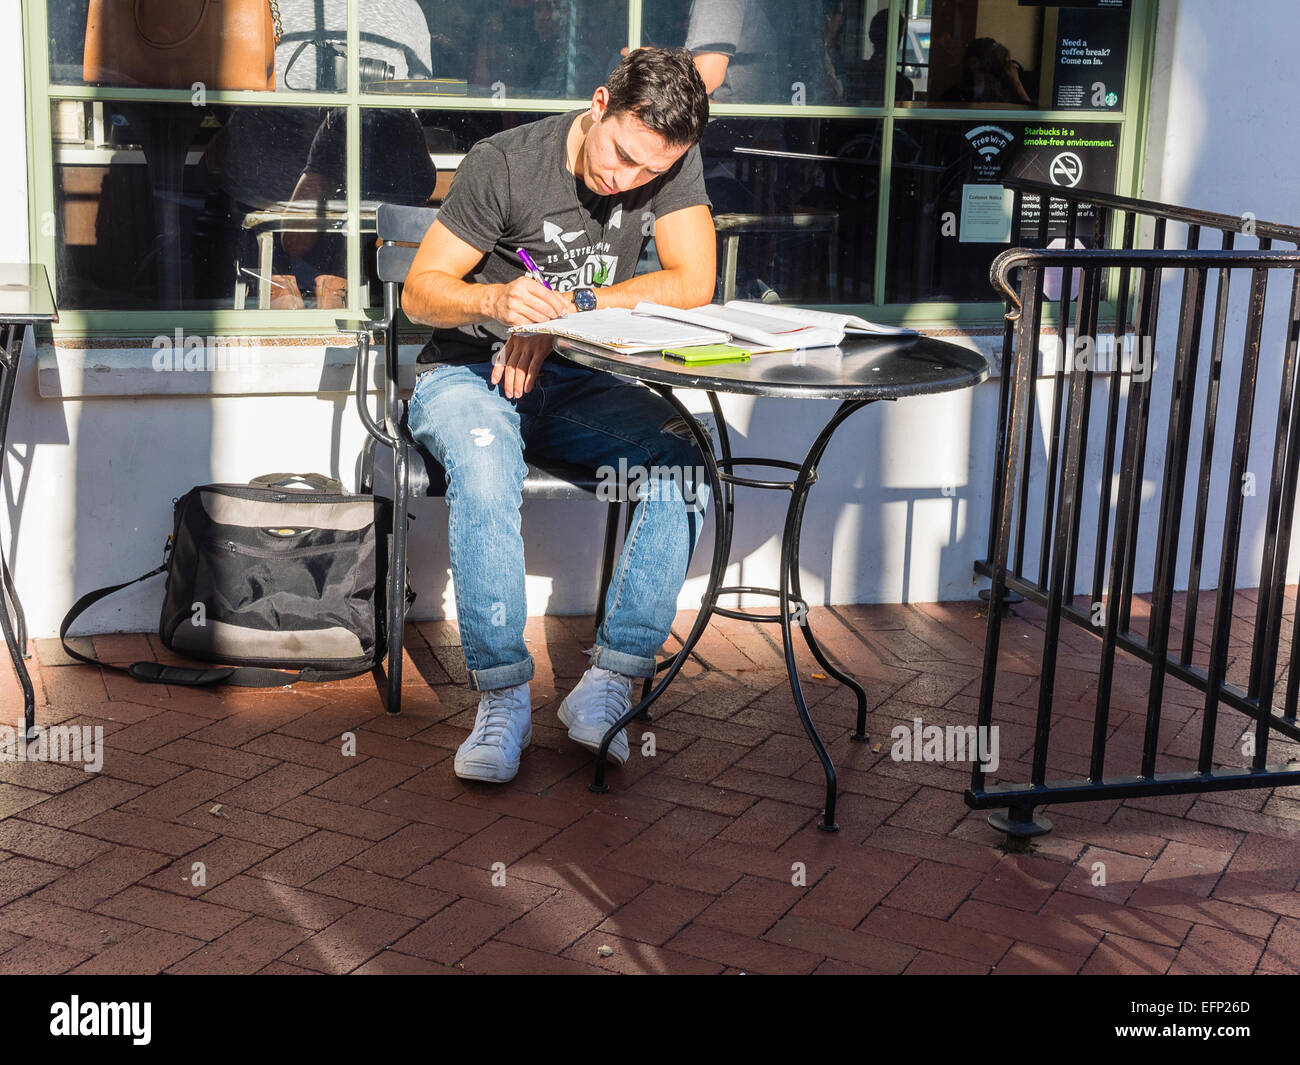 A twenty something male college student studies at a table on a patio outside a coffee shop in Santa Barbara, California. - Stock Image